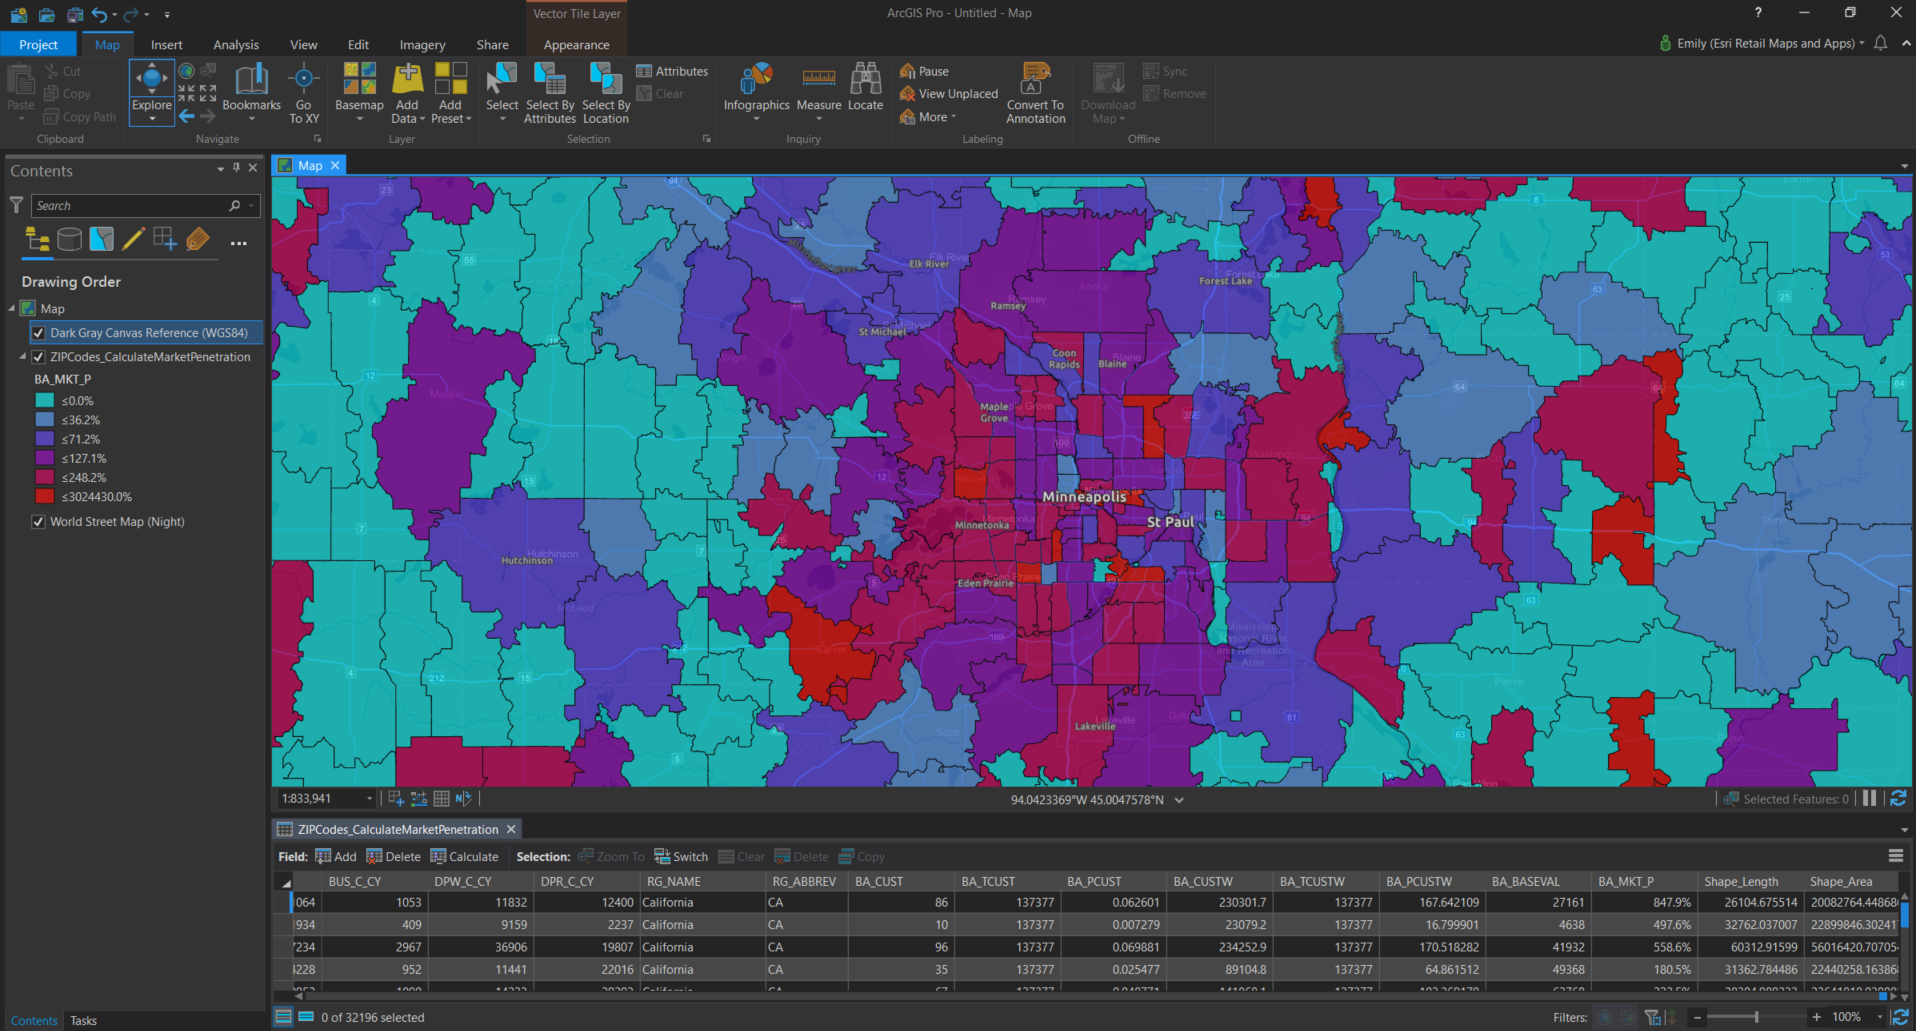 A Market Penetration layer calculated using population of zip codes compared to a point layer of customer data and weighted using their spending totals. This helps us see areas where we have more saturation (red) and areas where we have gaps in our market (shades of blue and purple).